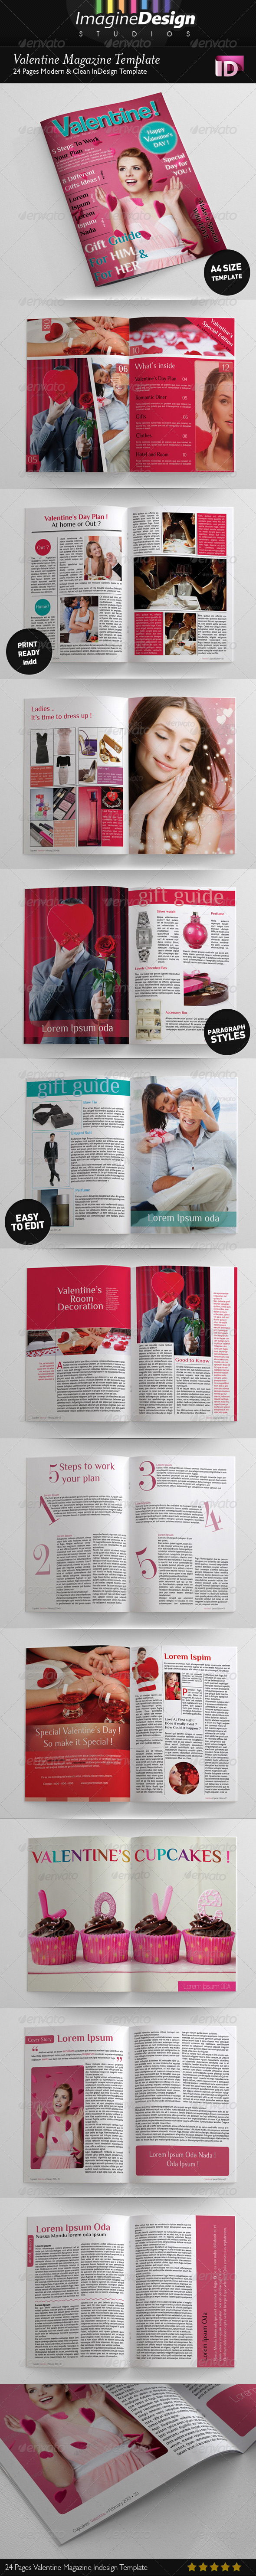 24 Pages Valentine Magazine Template - Magazines Print Templates